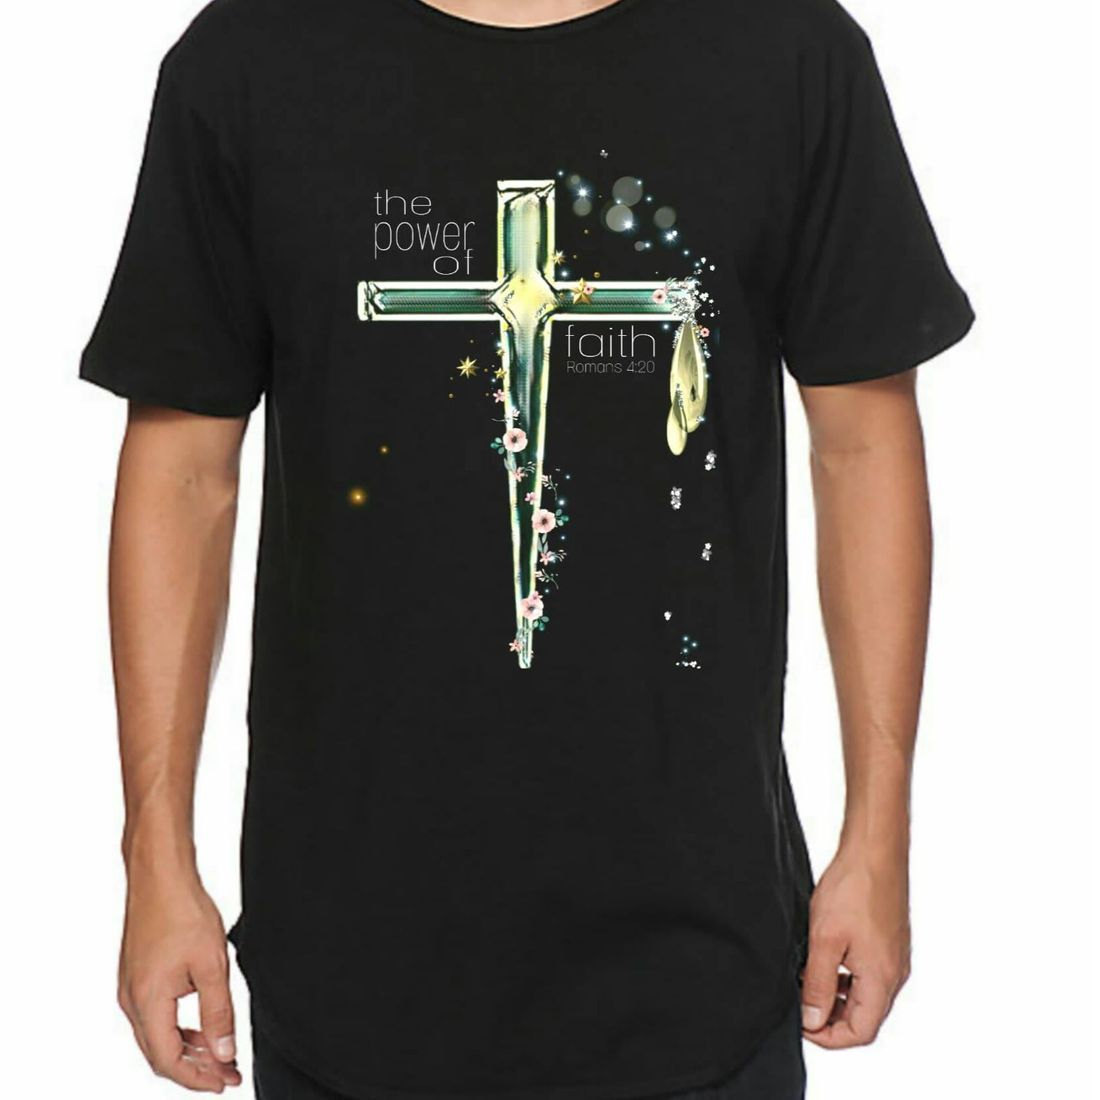 White Wolf Clothing. Christian T-Shirts - POWER OF FAITH